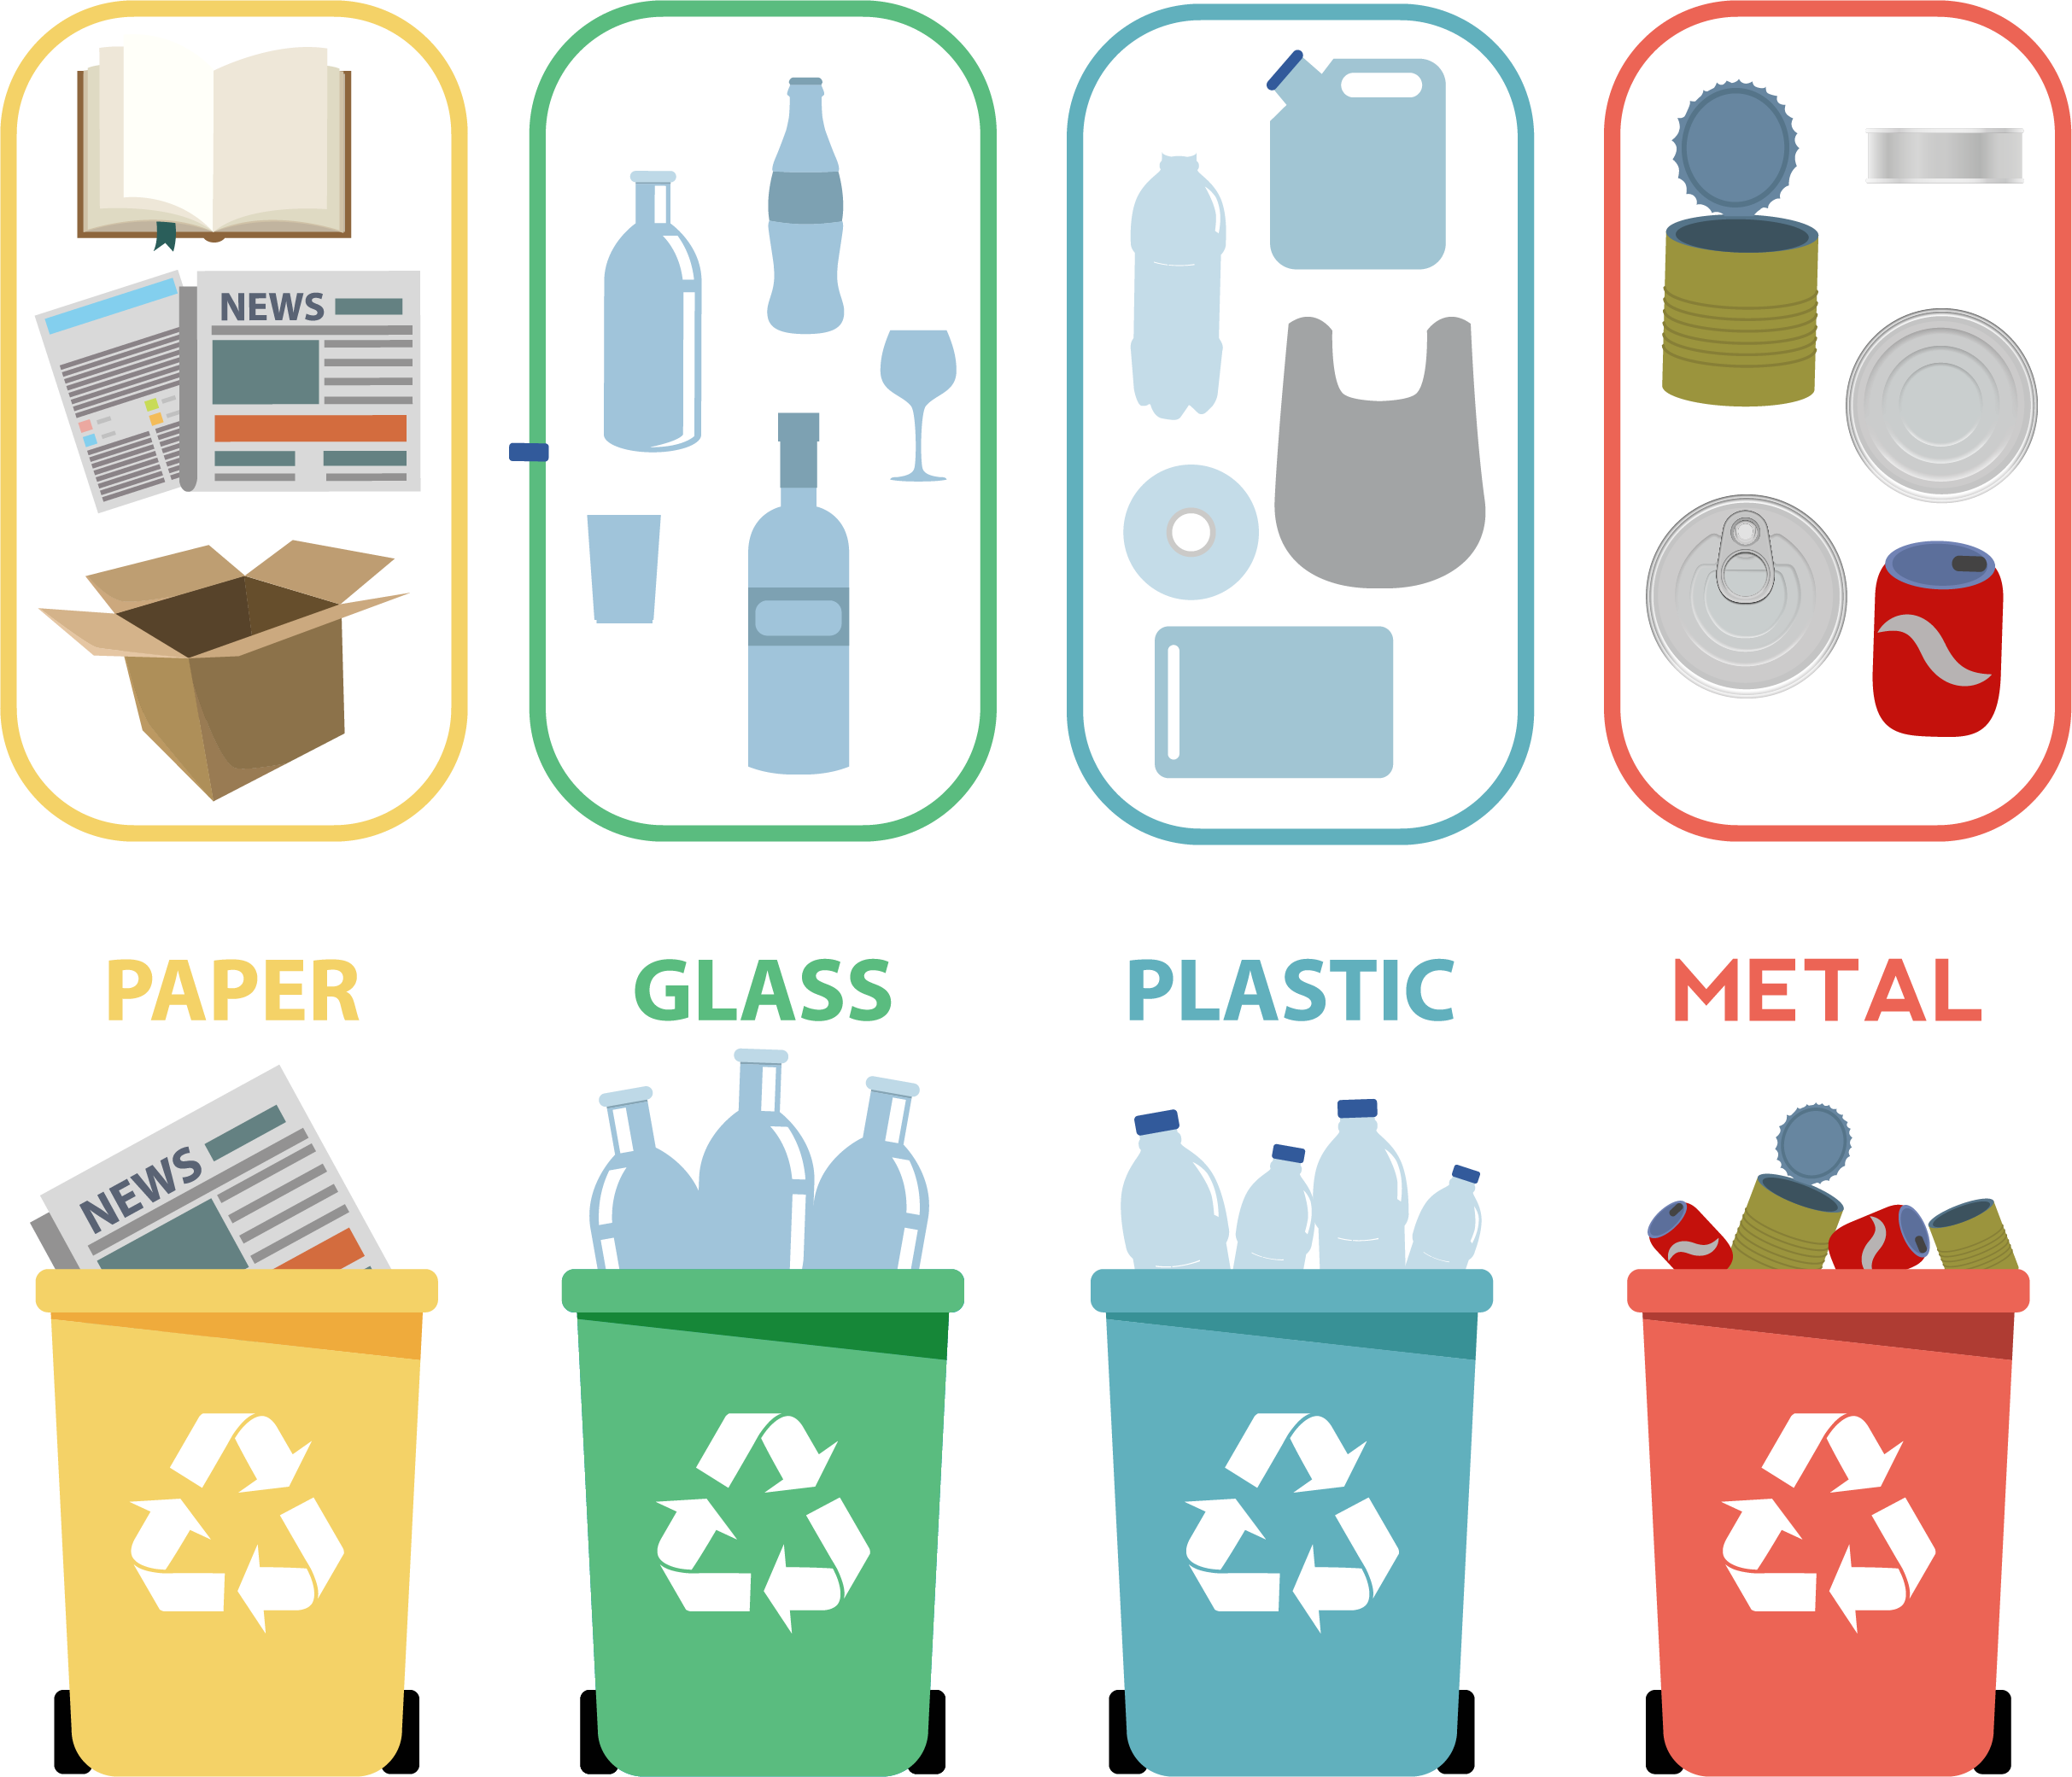 Classification based on RI recycling rules